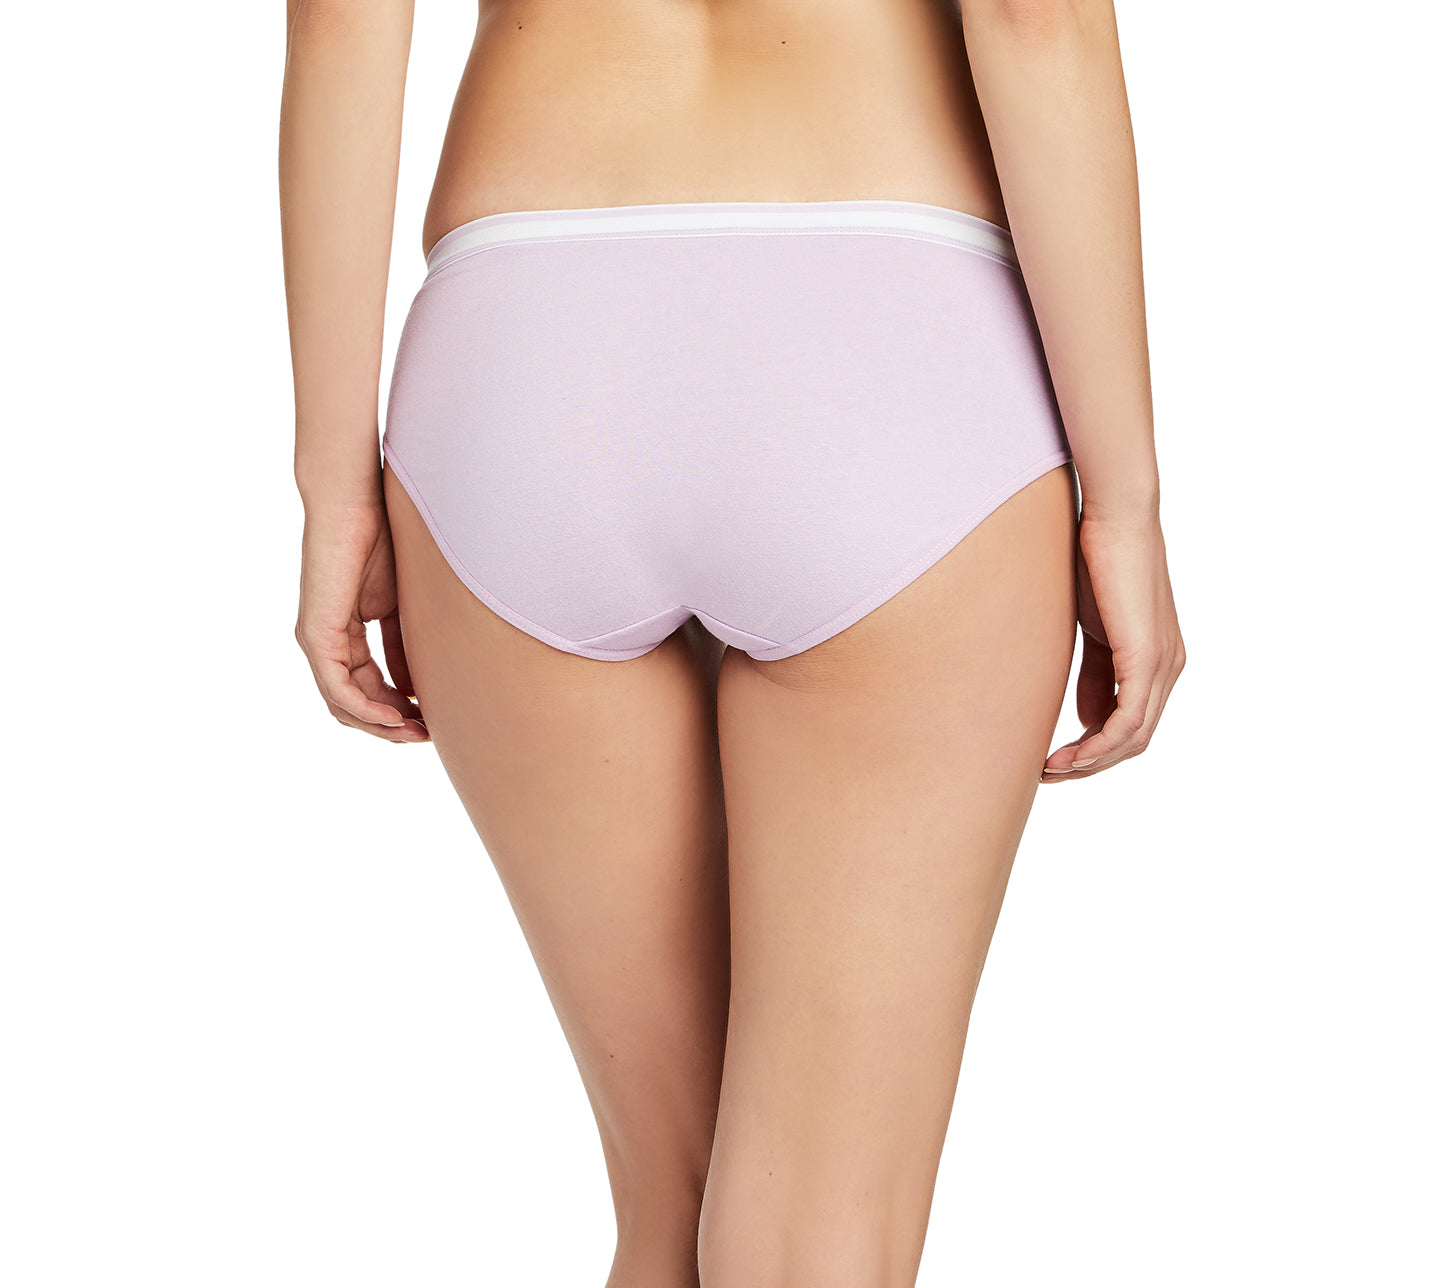 Nabtos Women's Cotton Underwear Hipster Panties (Pack of 6)